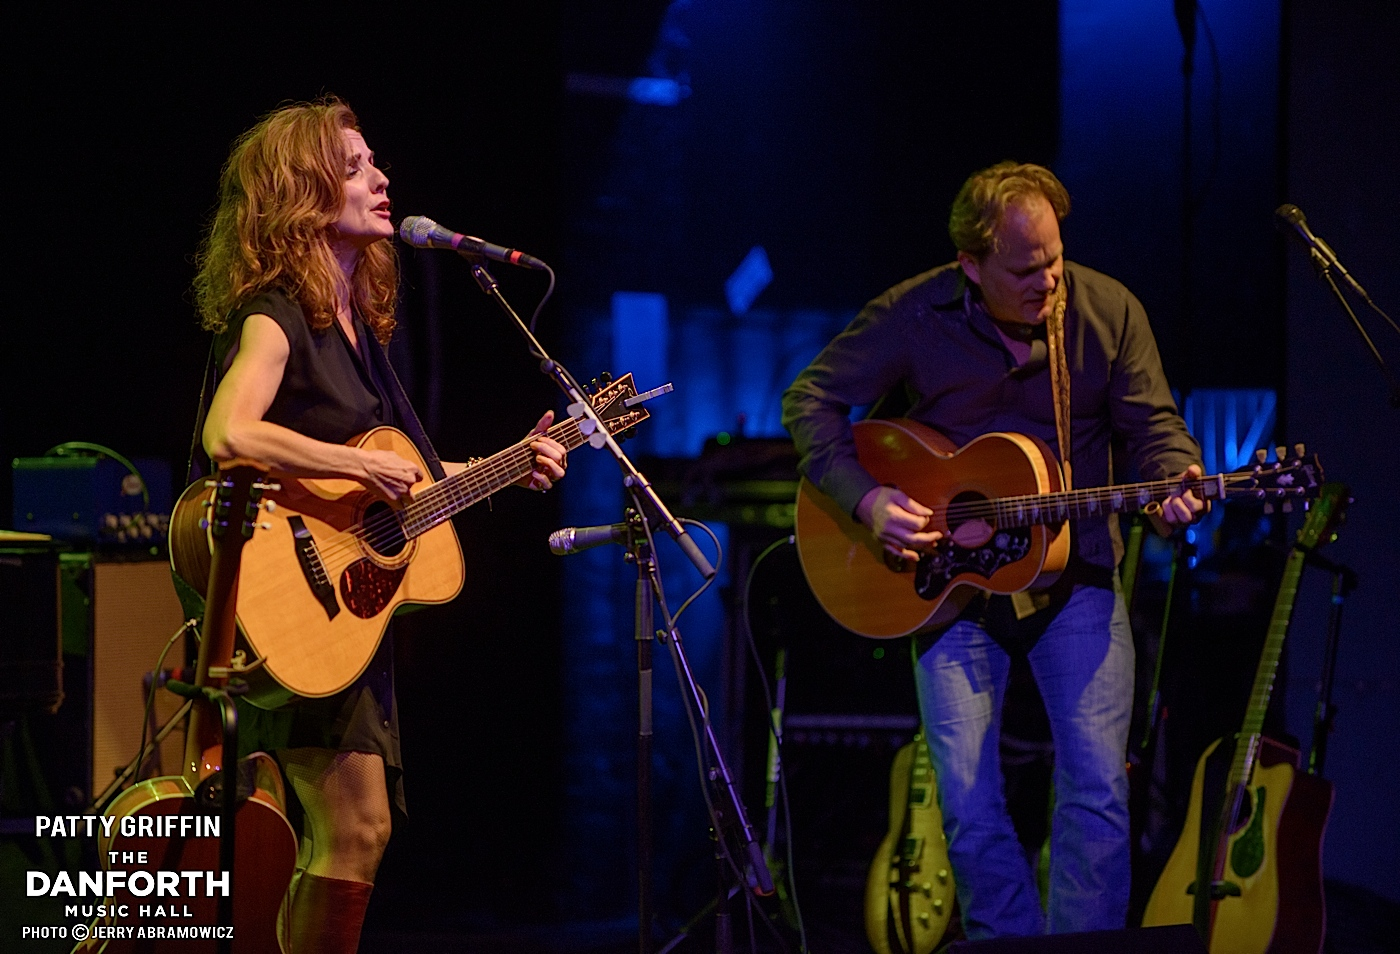 20130611 Patty Griffin performs at The Danforth Music Hall Toronto 0191